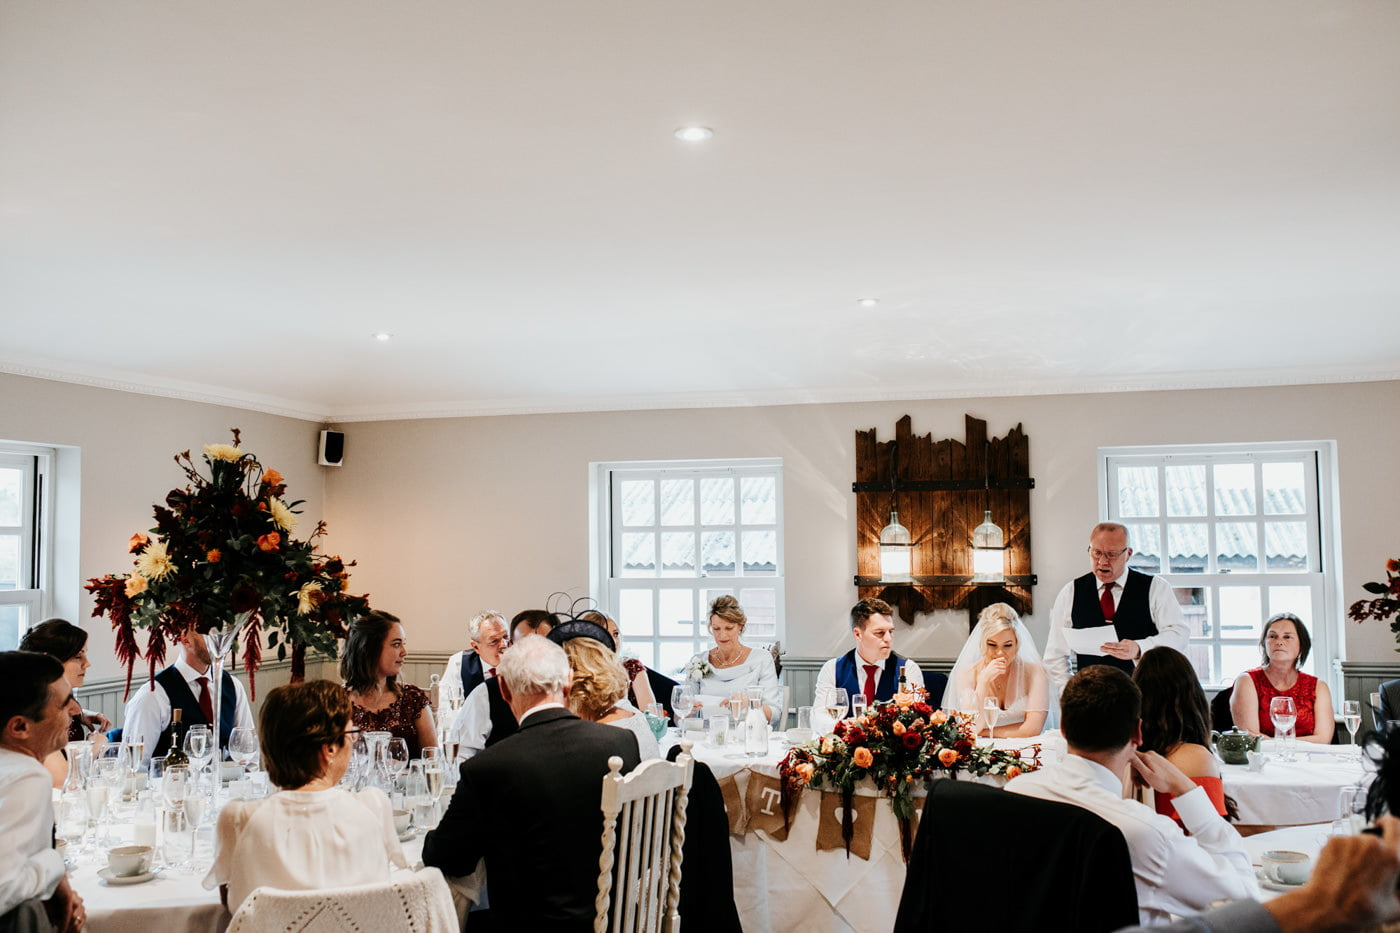 Natalie and Rob, Widbrook Grange, Wiltshire 41